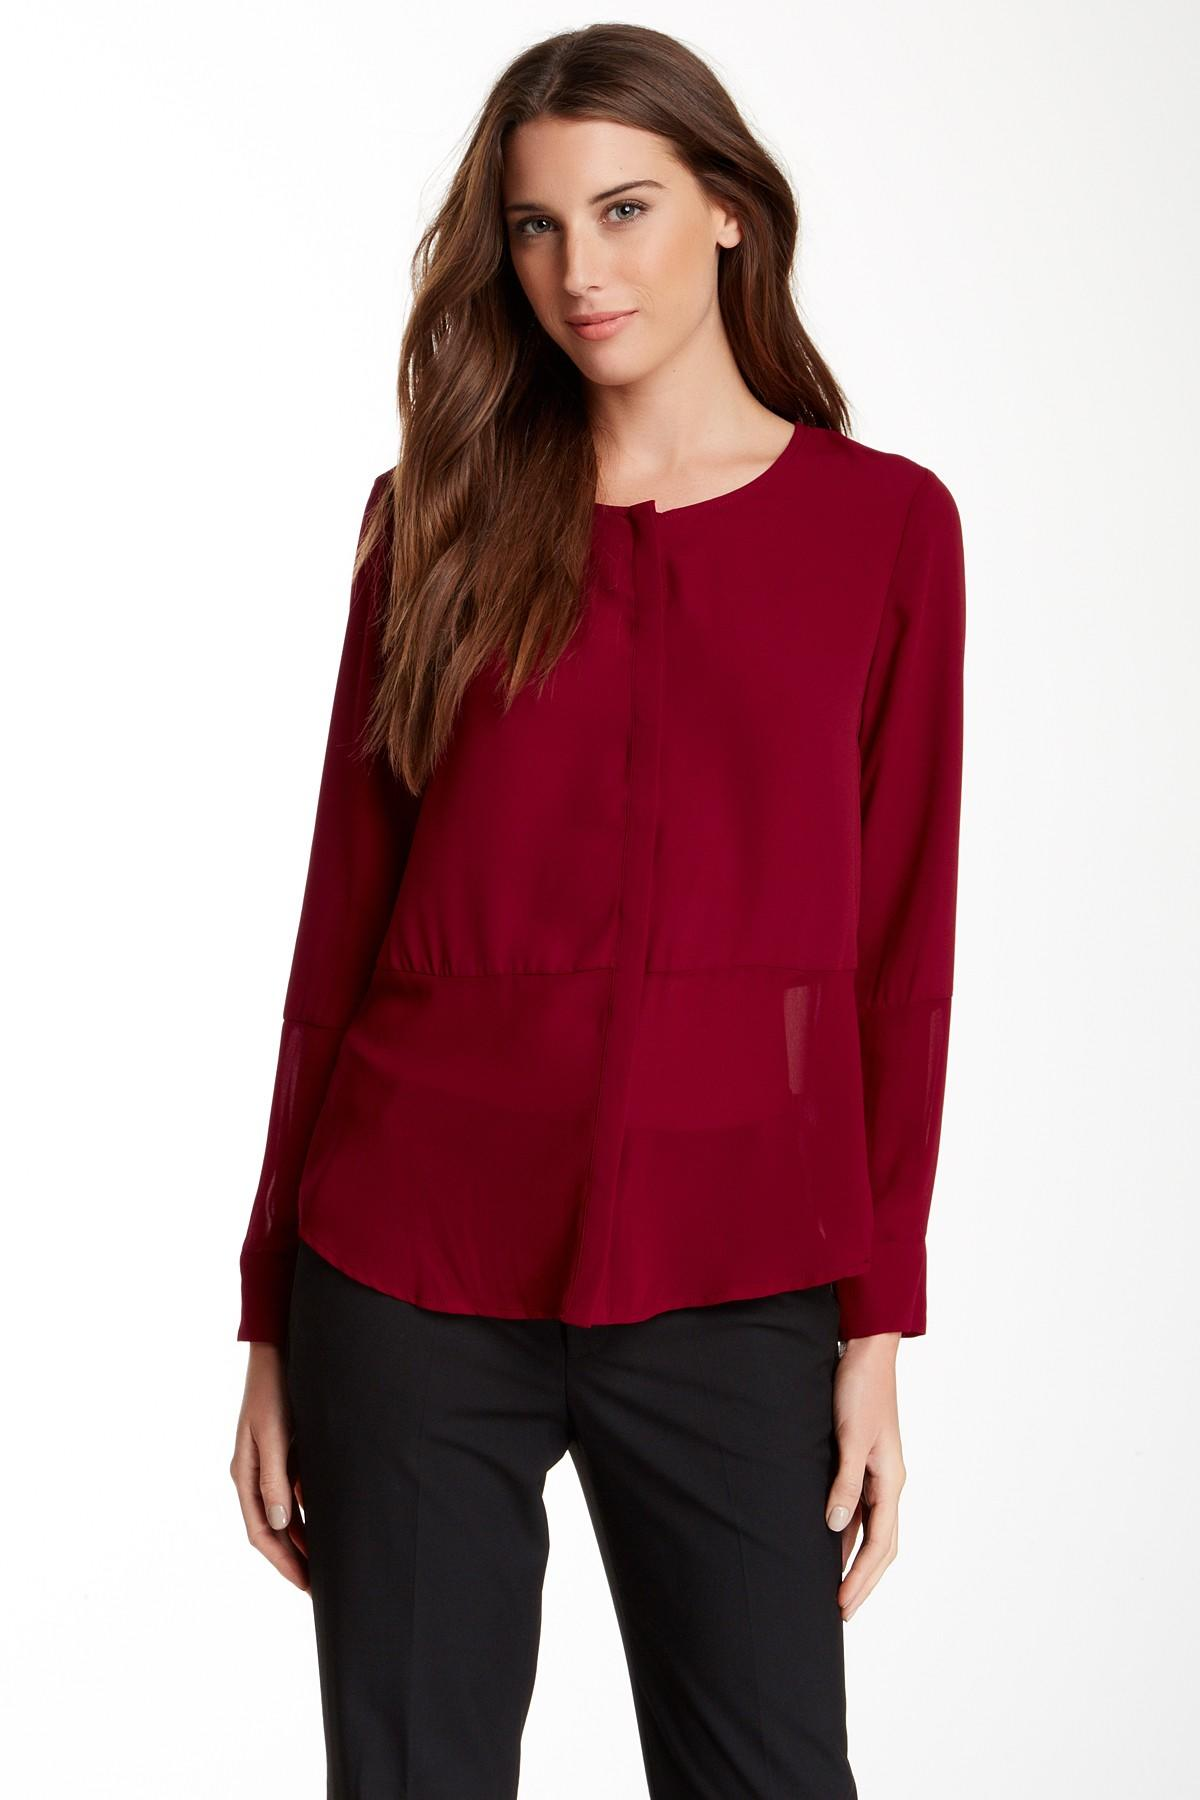 Equipment Blouse Nordstrom Rack 45